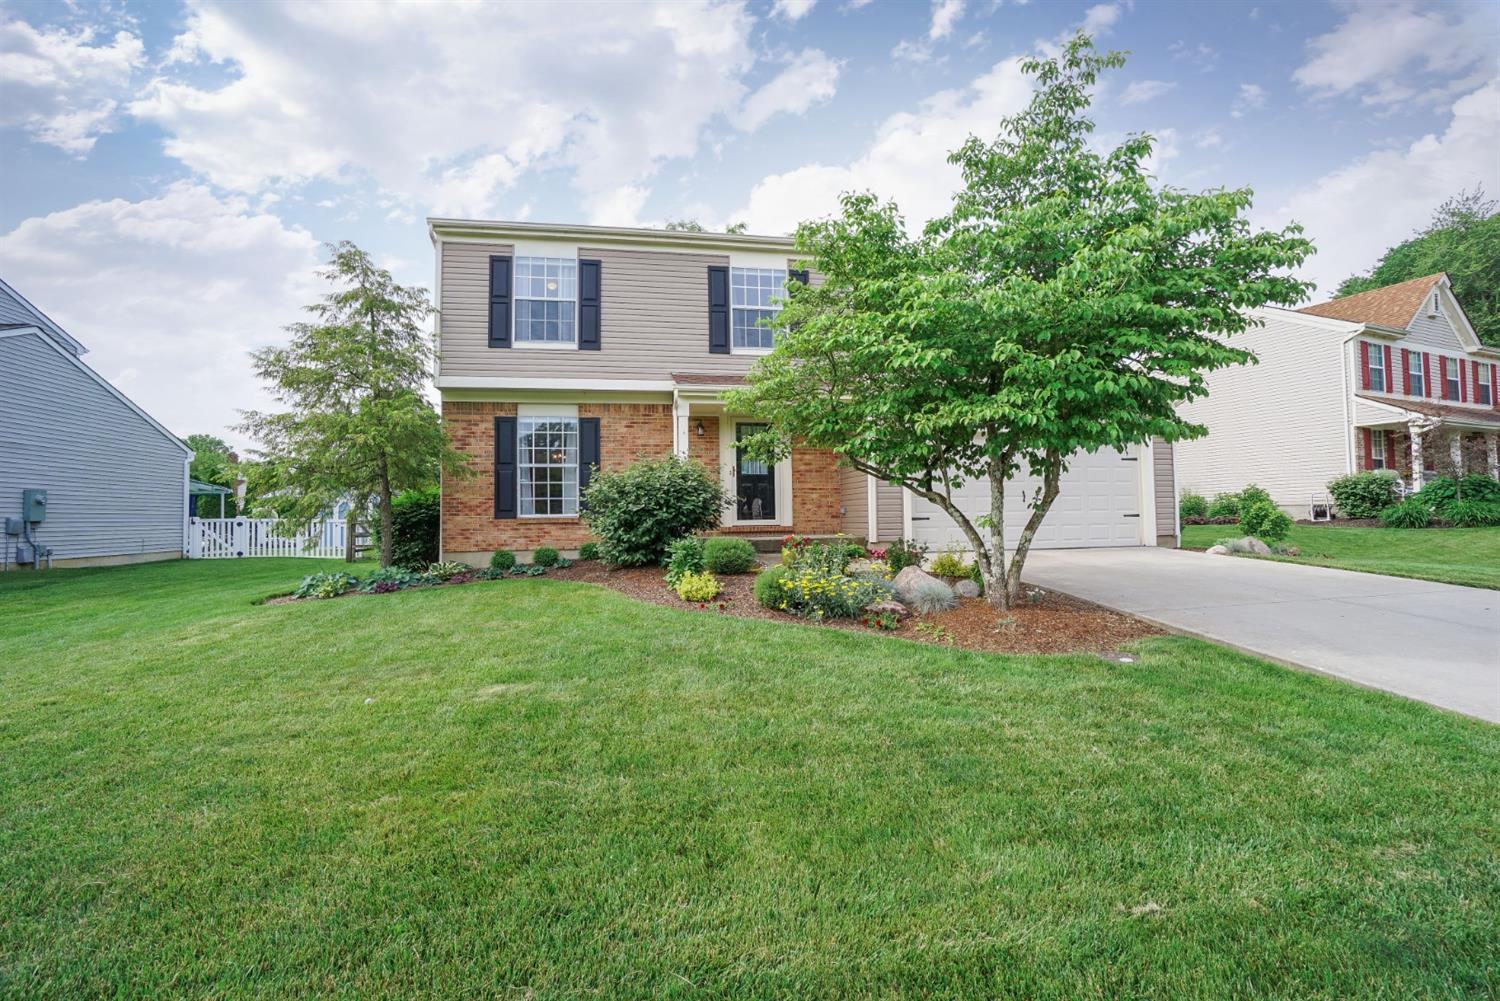 7955 Fawncreek Drive Sycamore Twp., OH